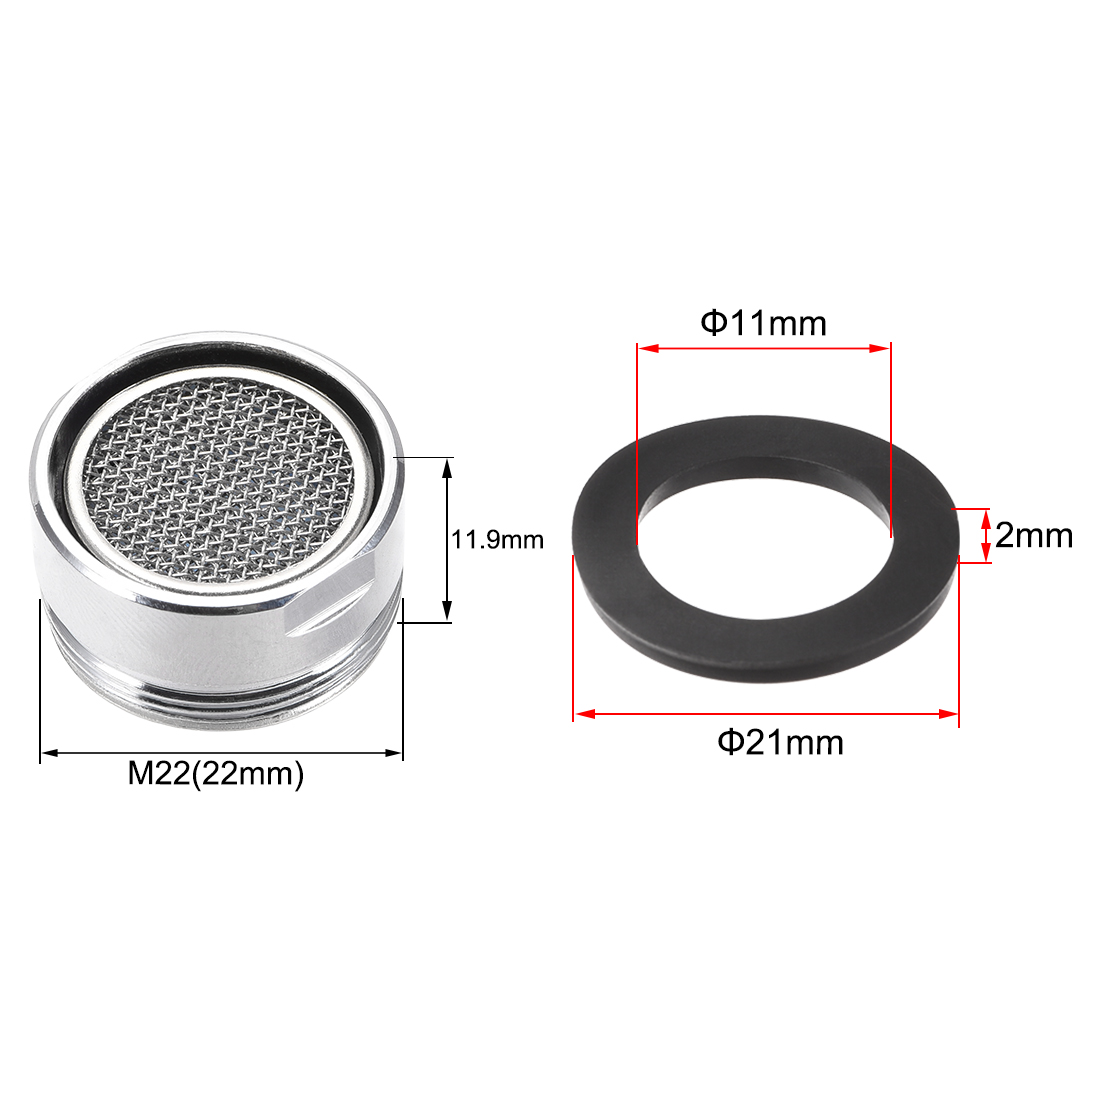 Uxcell Faucet Aerator M22 Male Thread Bathroom Kitchen Faucet Aerator Replacement Part